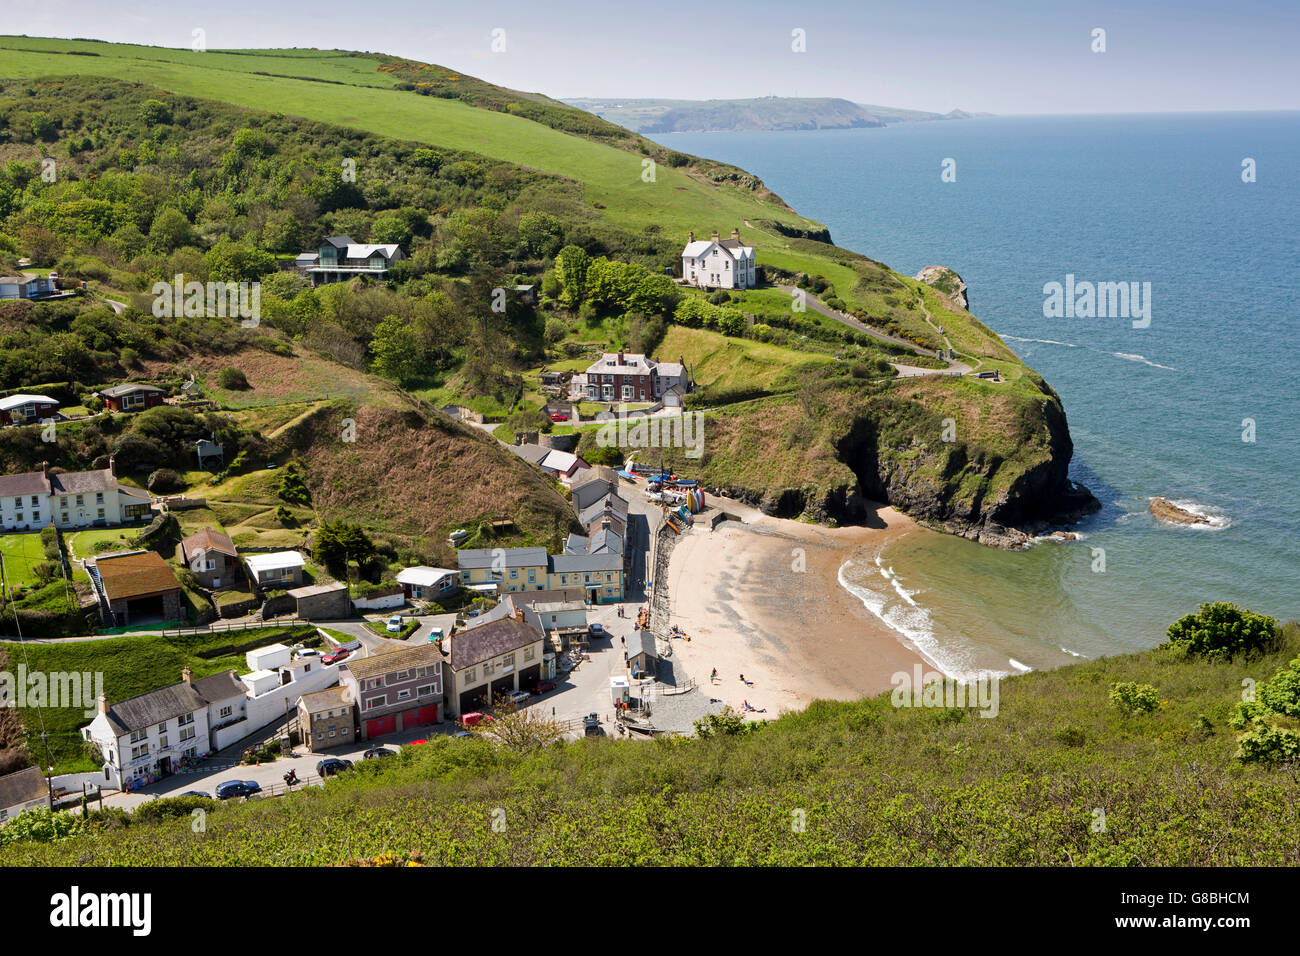 UK, Wales, Ceredigion, Llangrannog, elevated view of village and beach from Lochtyn cliffs - Stock Image